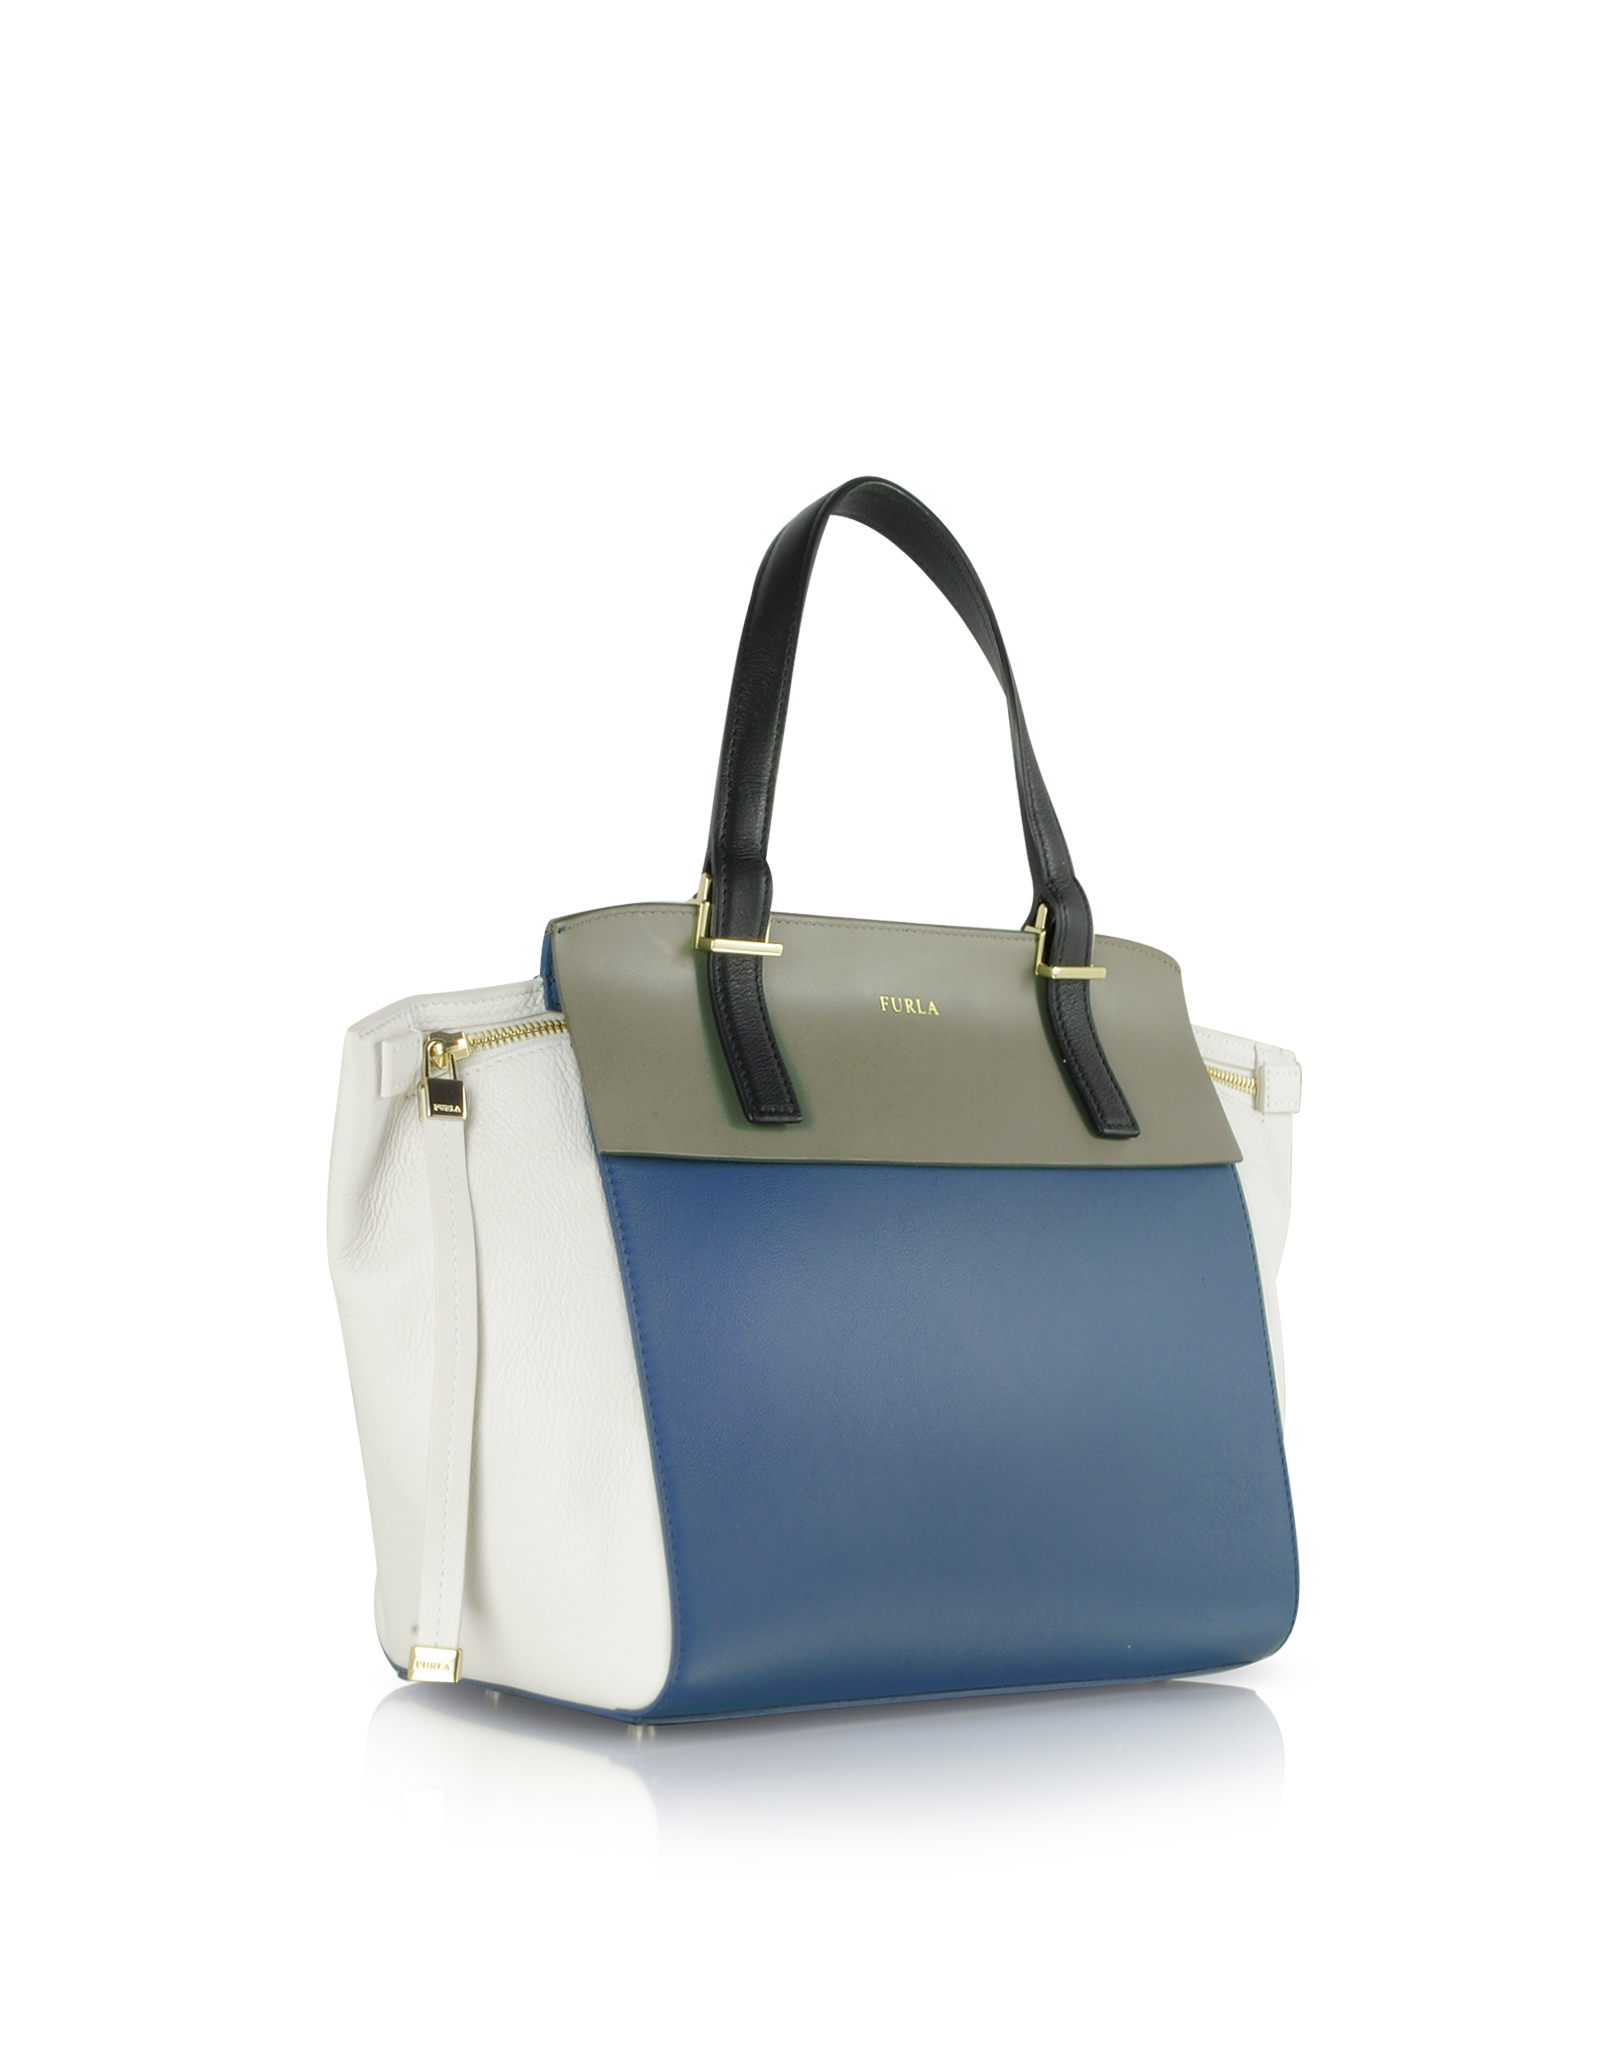 Lyst - Furla Dolce Vita Multicolor Small Leather Tote in Blue 2008a394dd0c1